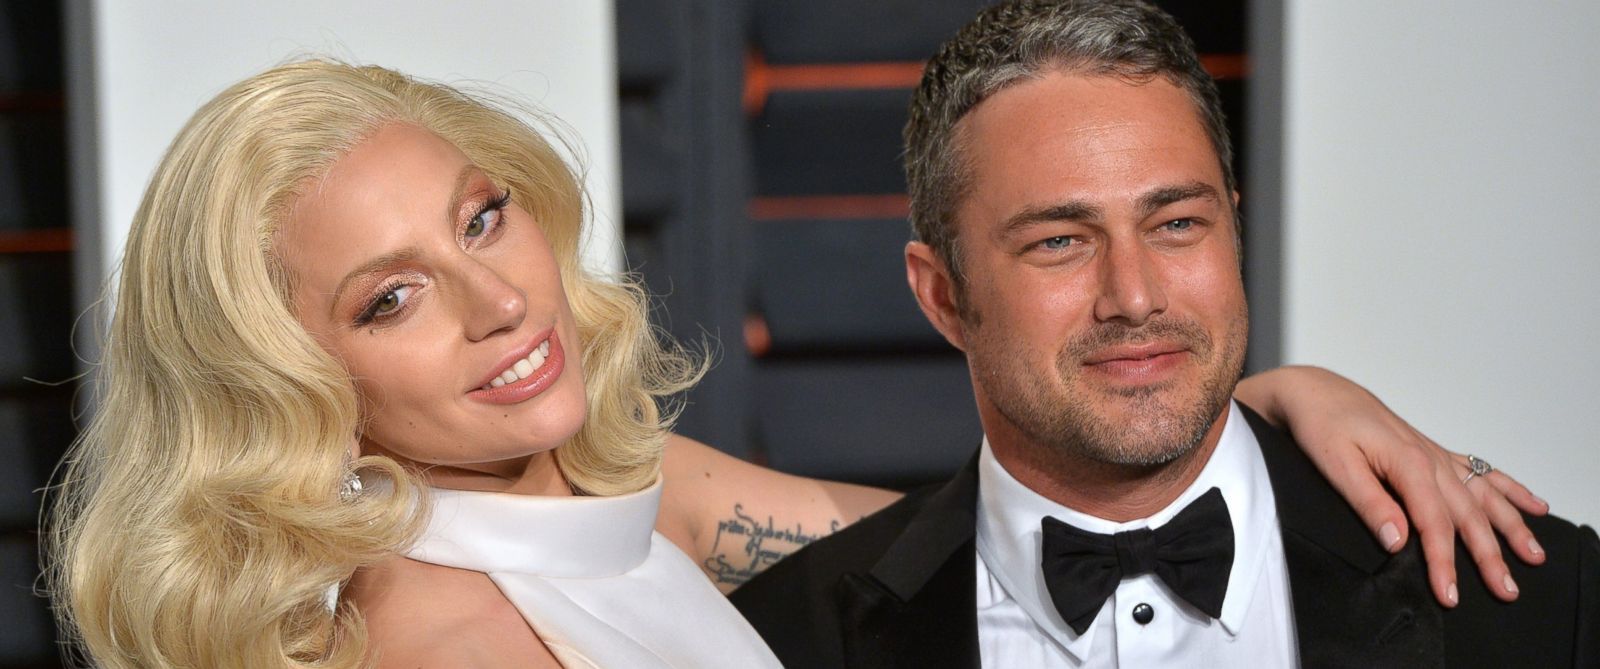 PHOTO: Lady Gaga and Taylor Kinney attend the 2016 Vanity Fair Oscar Party at Wallis Annenberg Center for the Performing Arts on Feb. 28, 2016 in Beverly Hills, Calif.